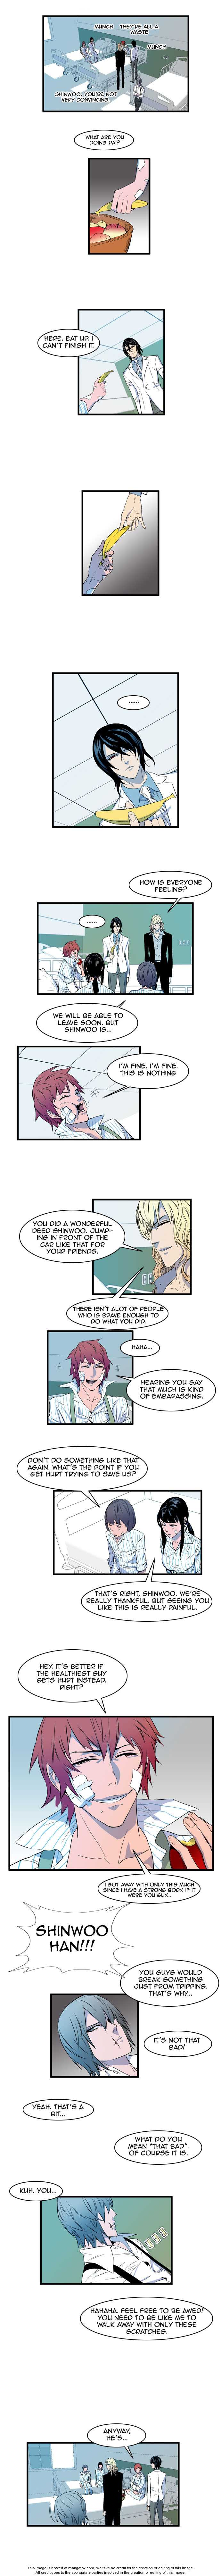 Noblesse 81 Page 3